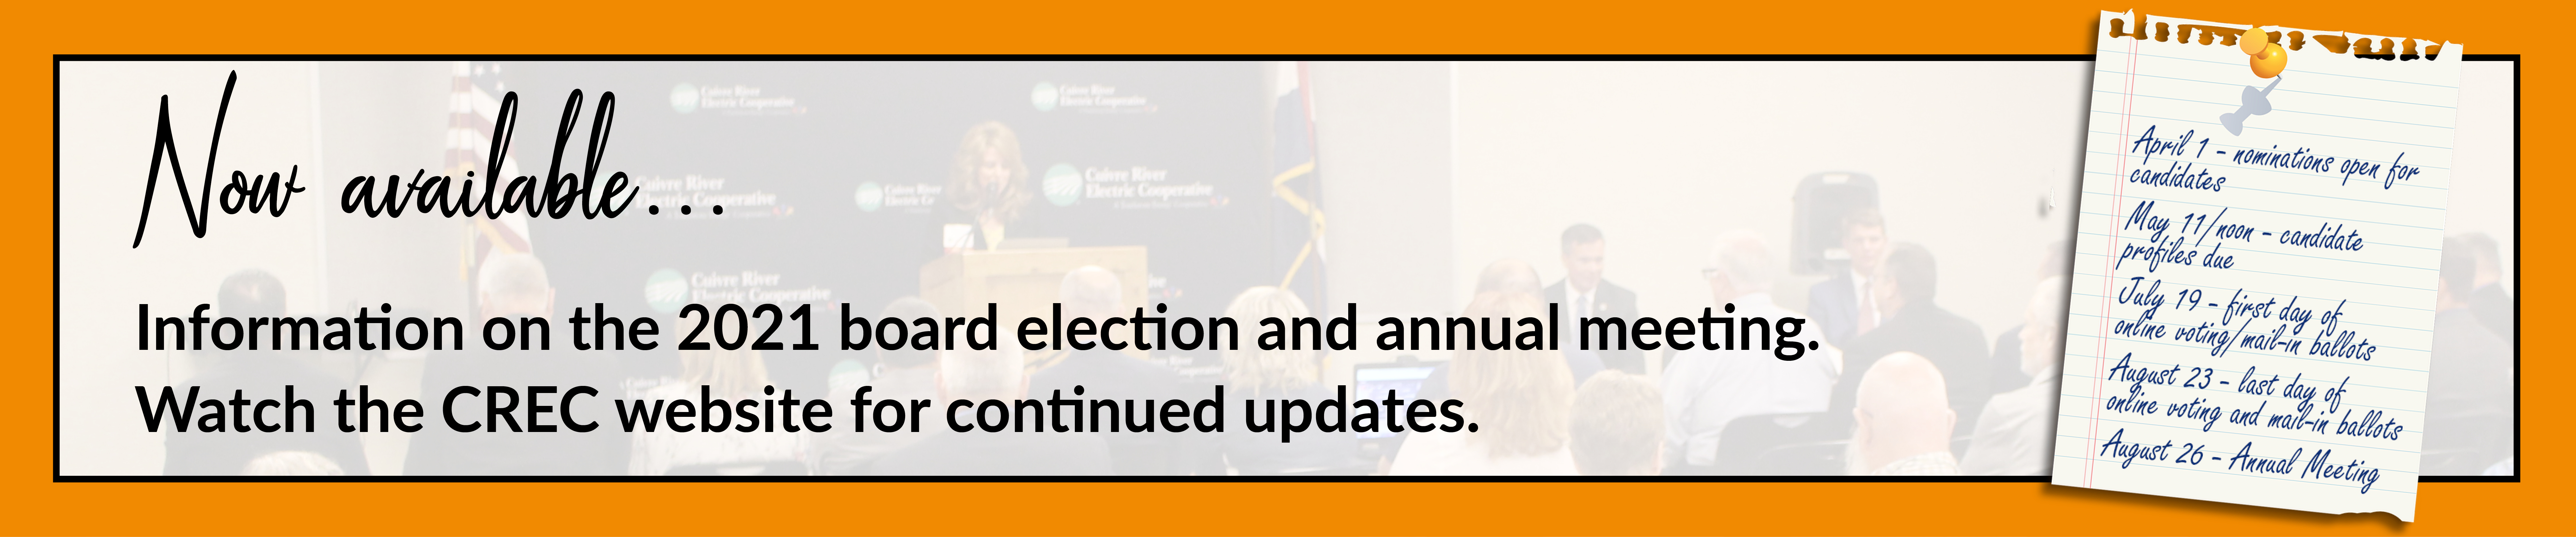 Information on the 2021 board election and annual meeting is now available. Click here to learn more